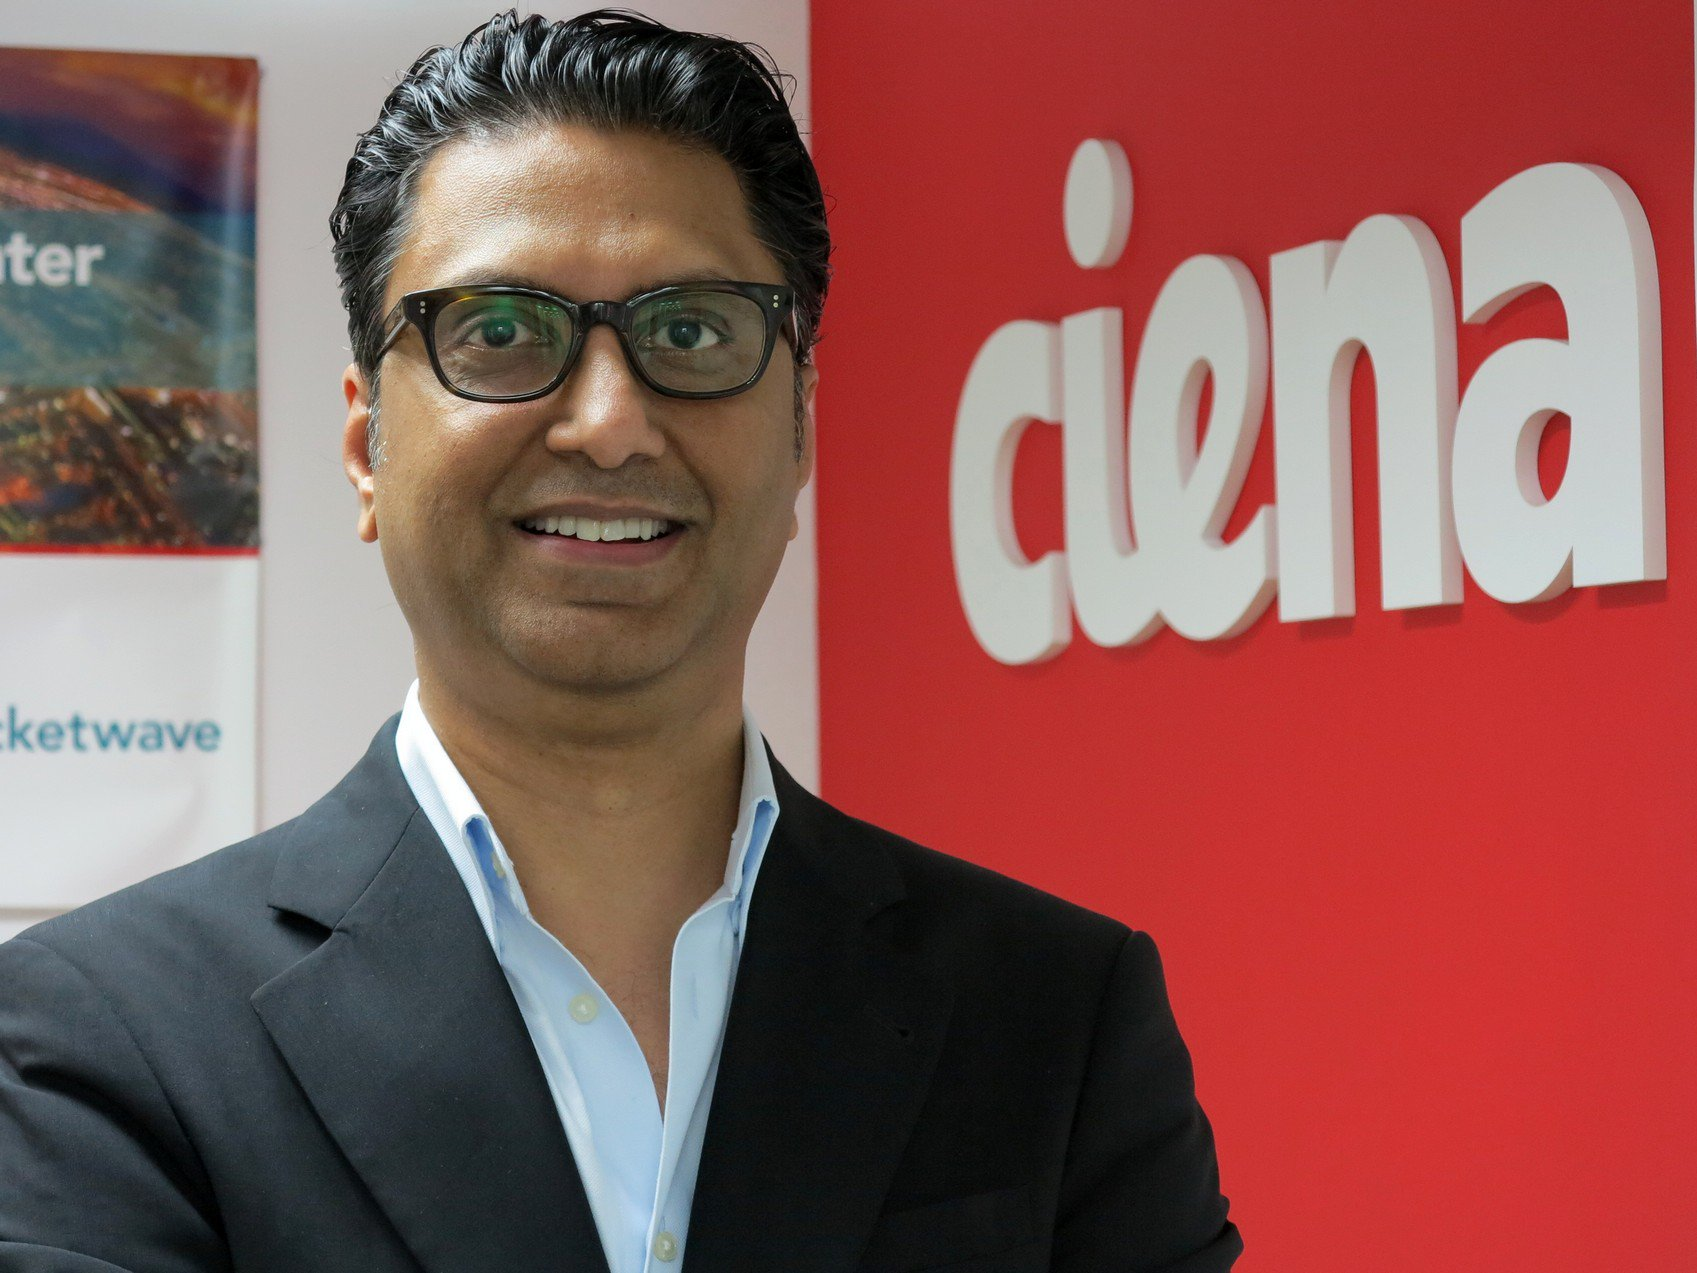 Anup Changaroth, senior director, APAC CTO Office and Strategic Business Development at Ciena